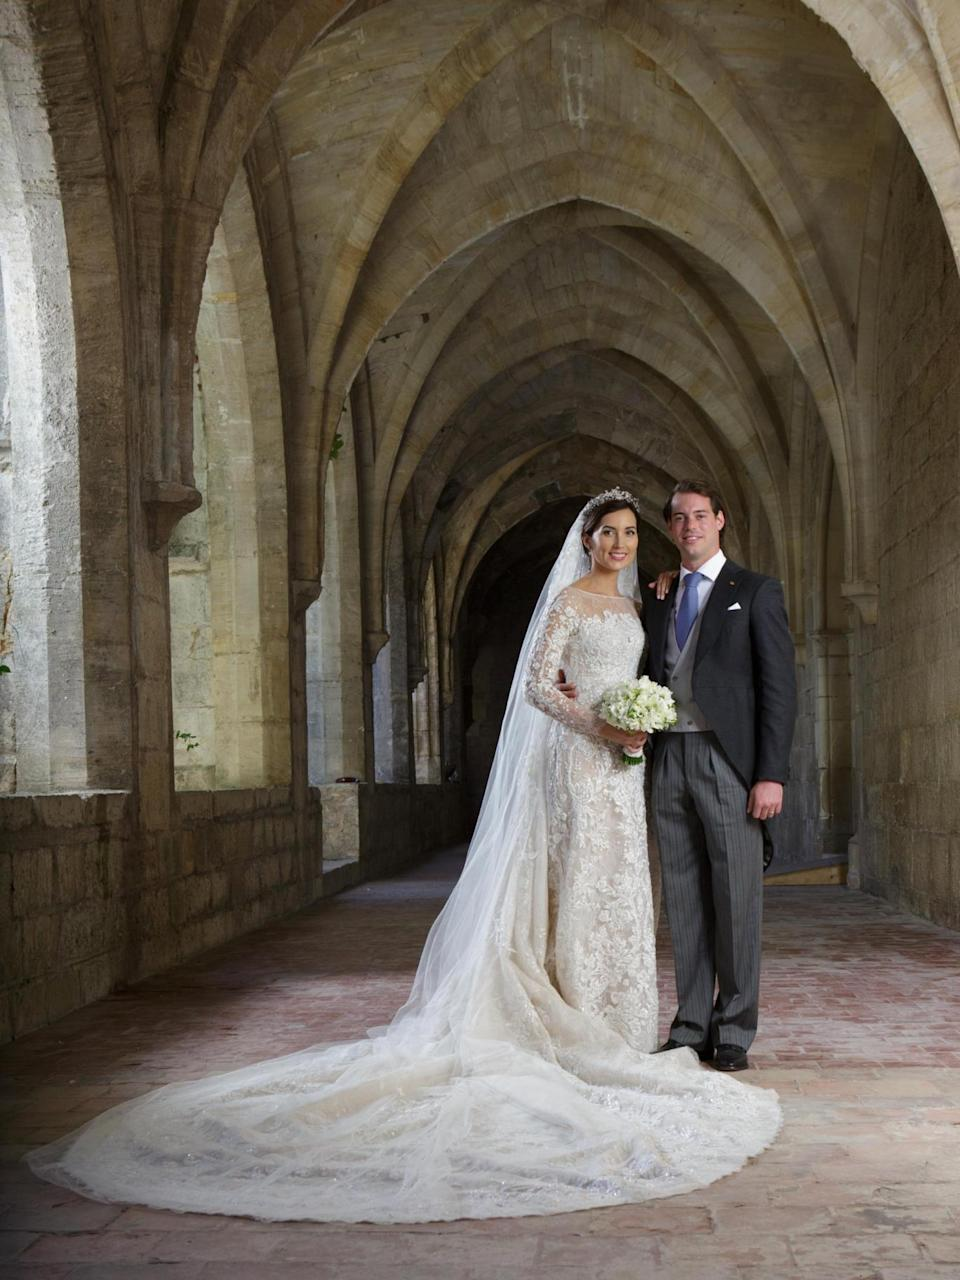 Princess Claire Of Luxembourg on her wedding day in 2013 (Getty Images)